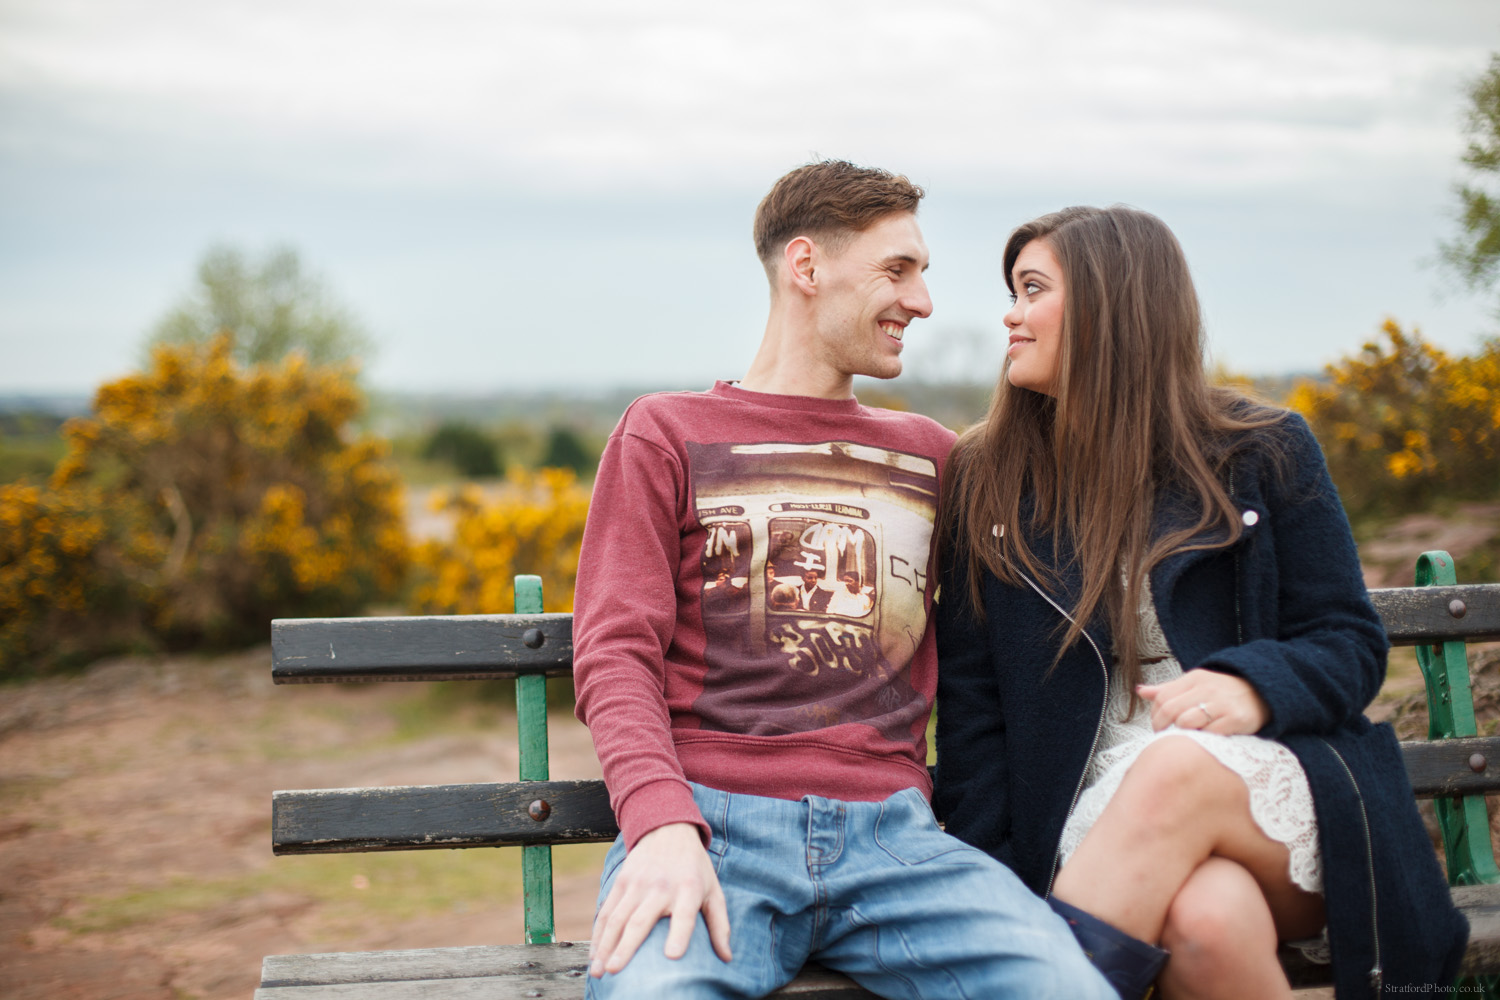 Hayley & David Beautiful Romantic Sunset Prewedding Engagement Shoot at Thurstaston on the Wirral 1.jpg